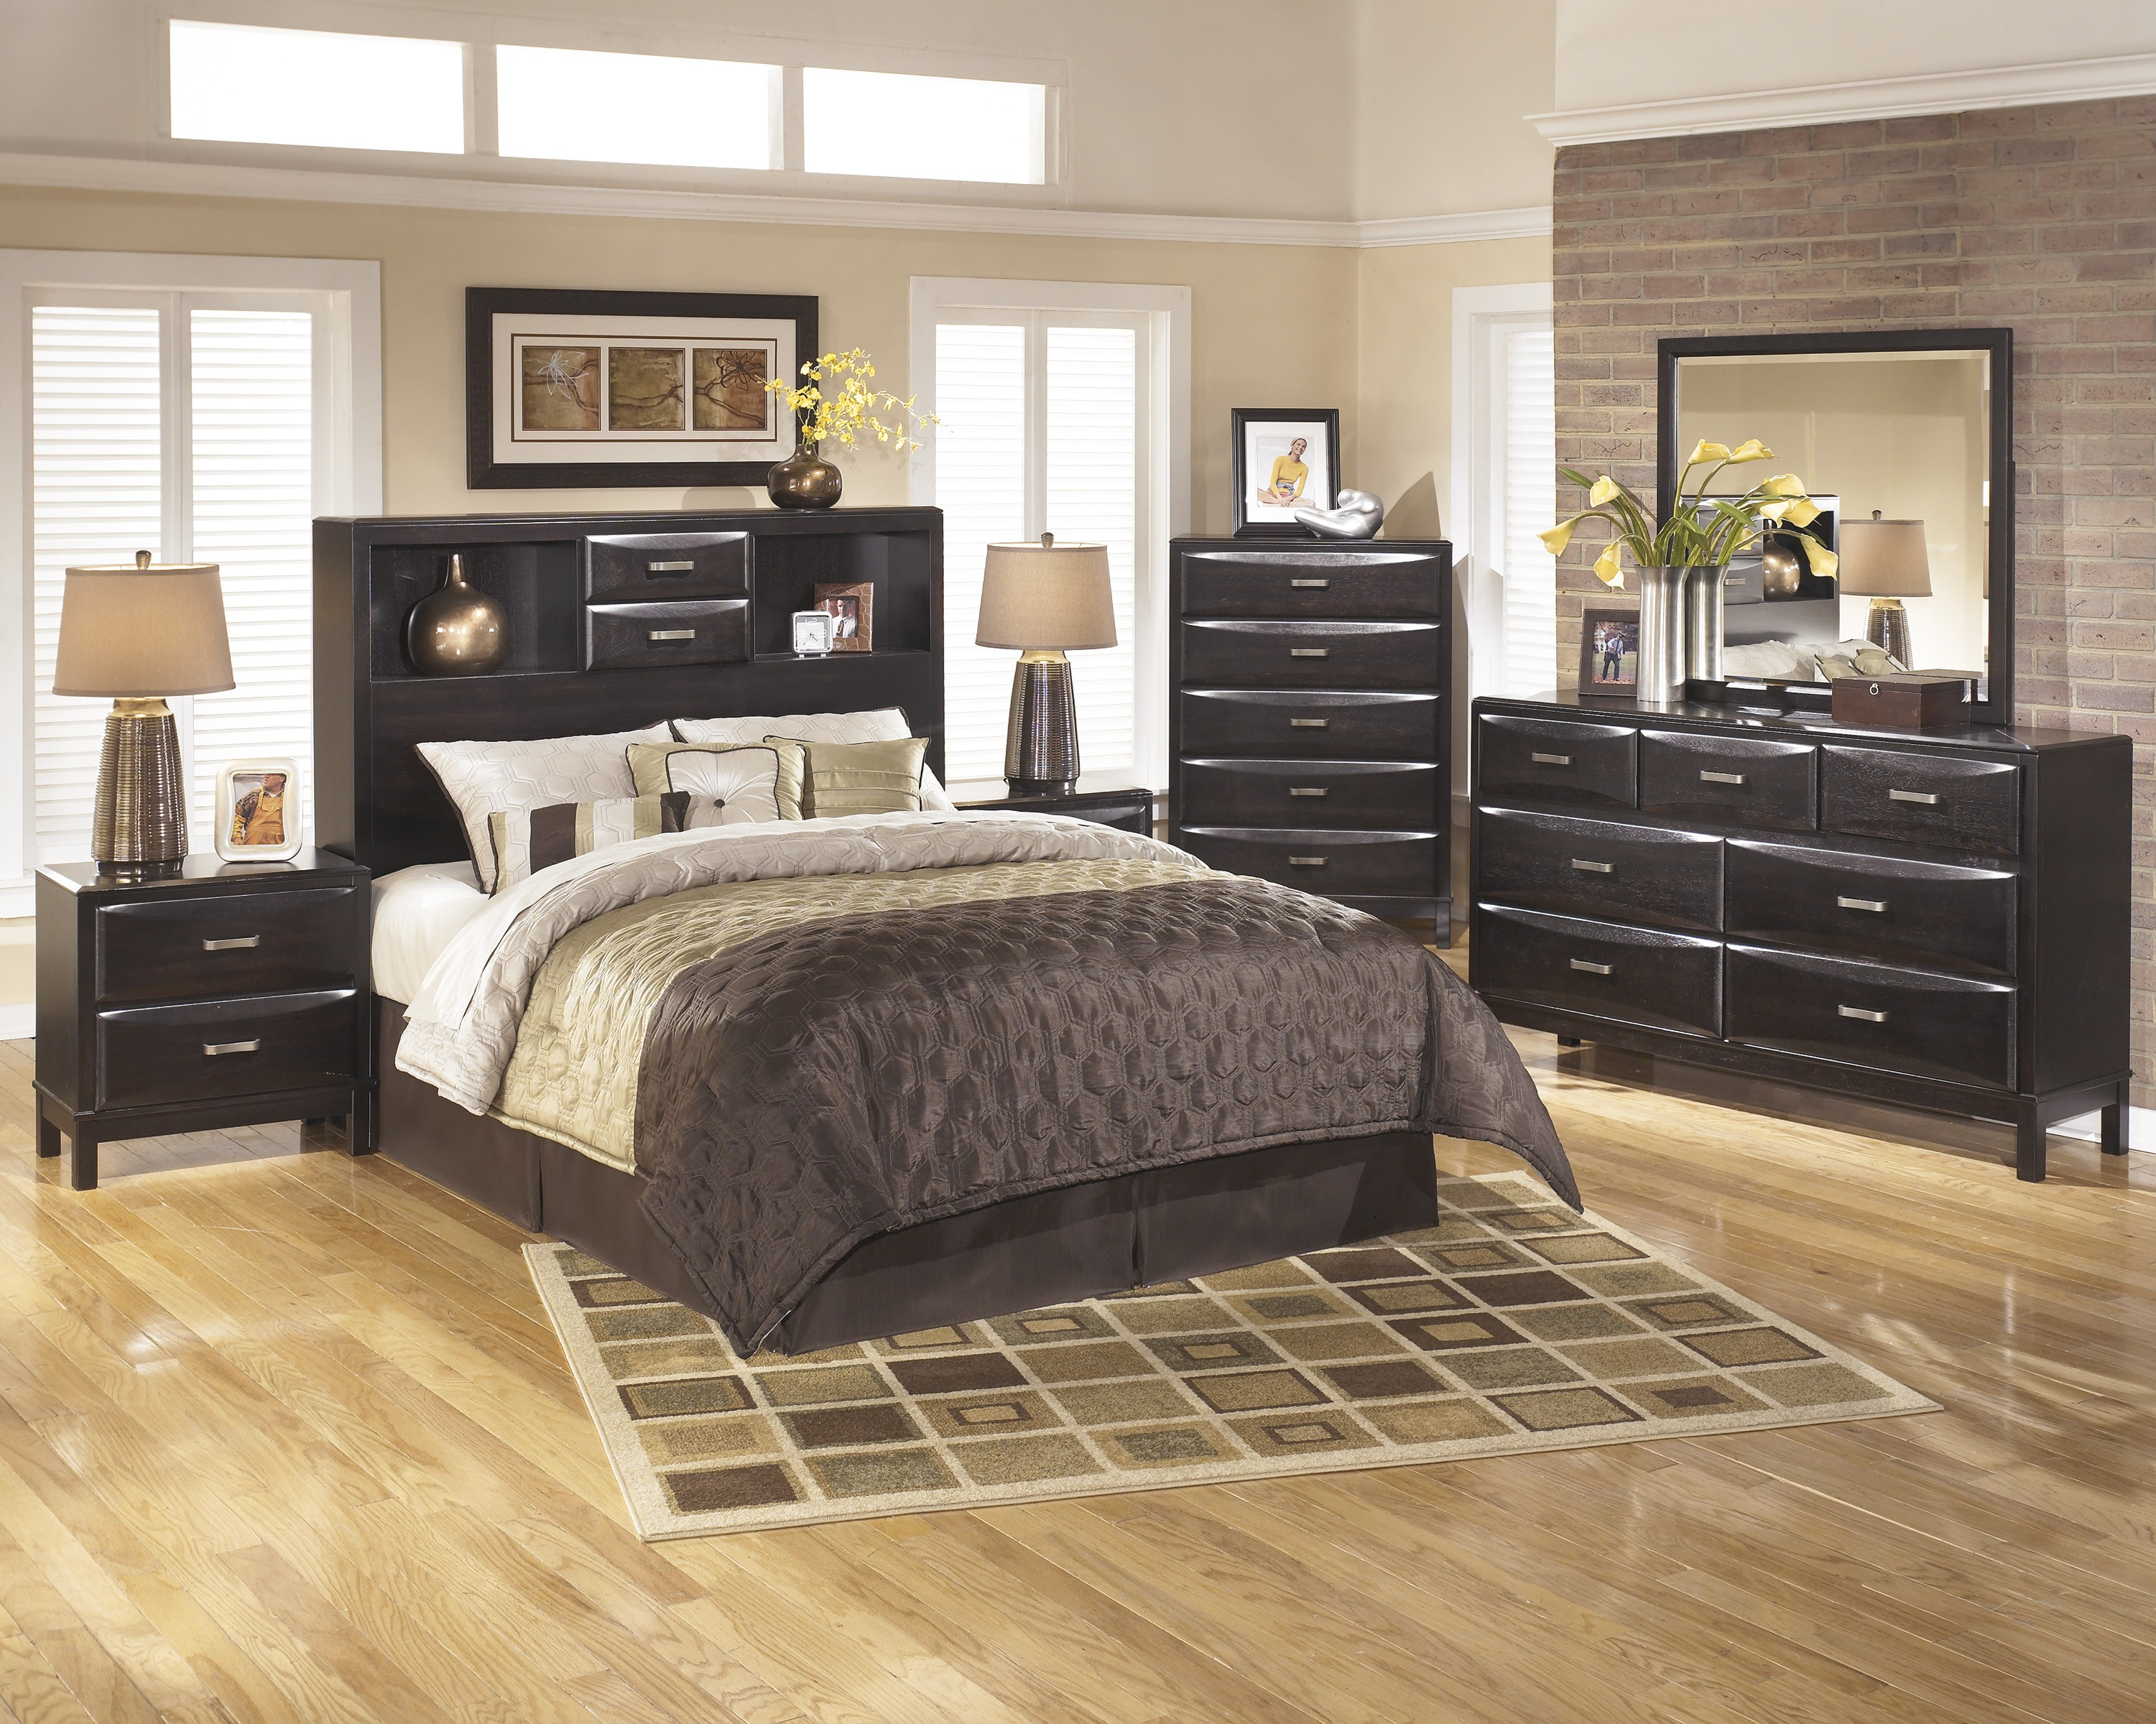 Image of: Kira Queen Storage Bed with Drawers